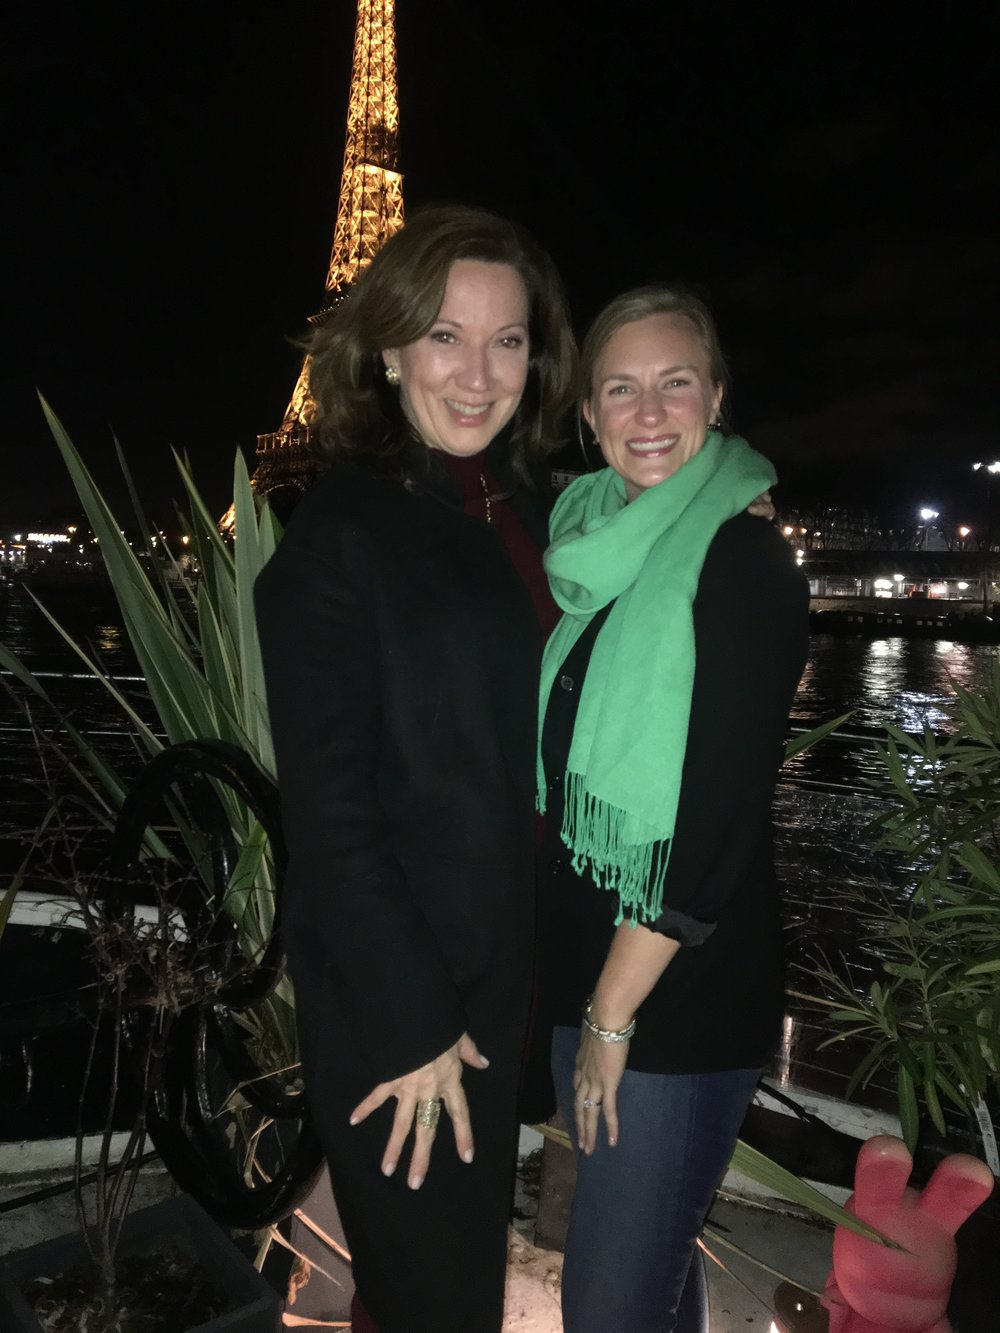 We loved celebrating our birthdays when our friend Peter, of Donghia, coordinated a lovely evening on a house boat overlooking the Eiffel Tower.